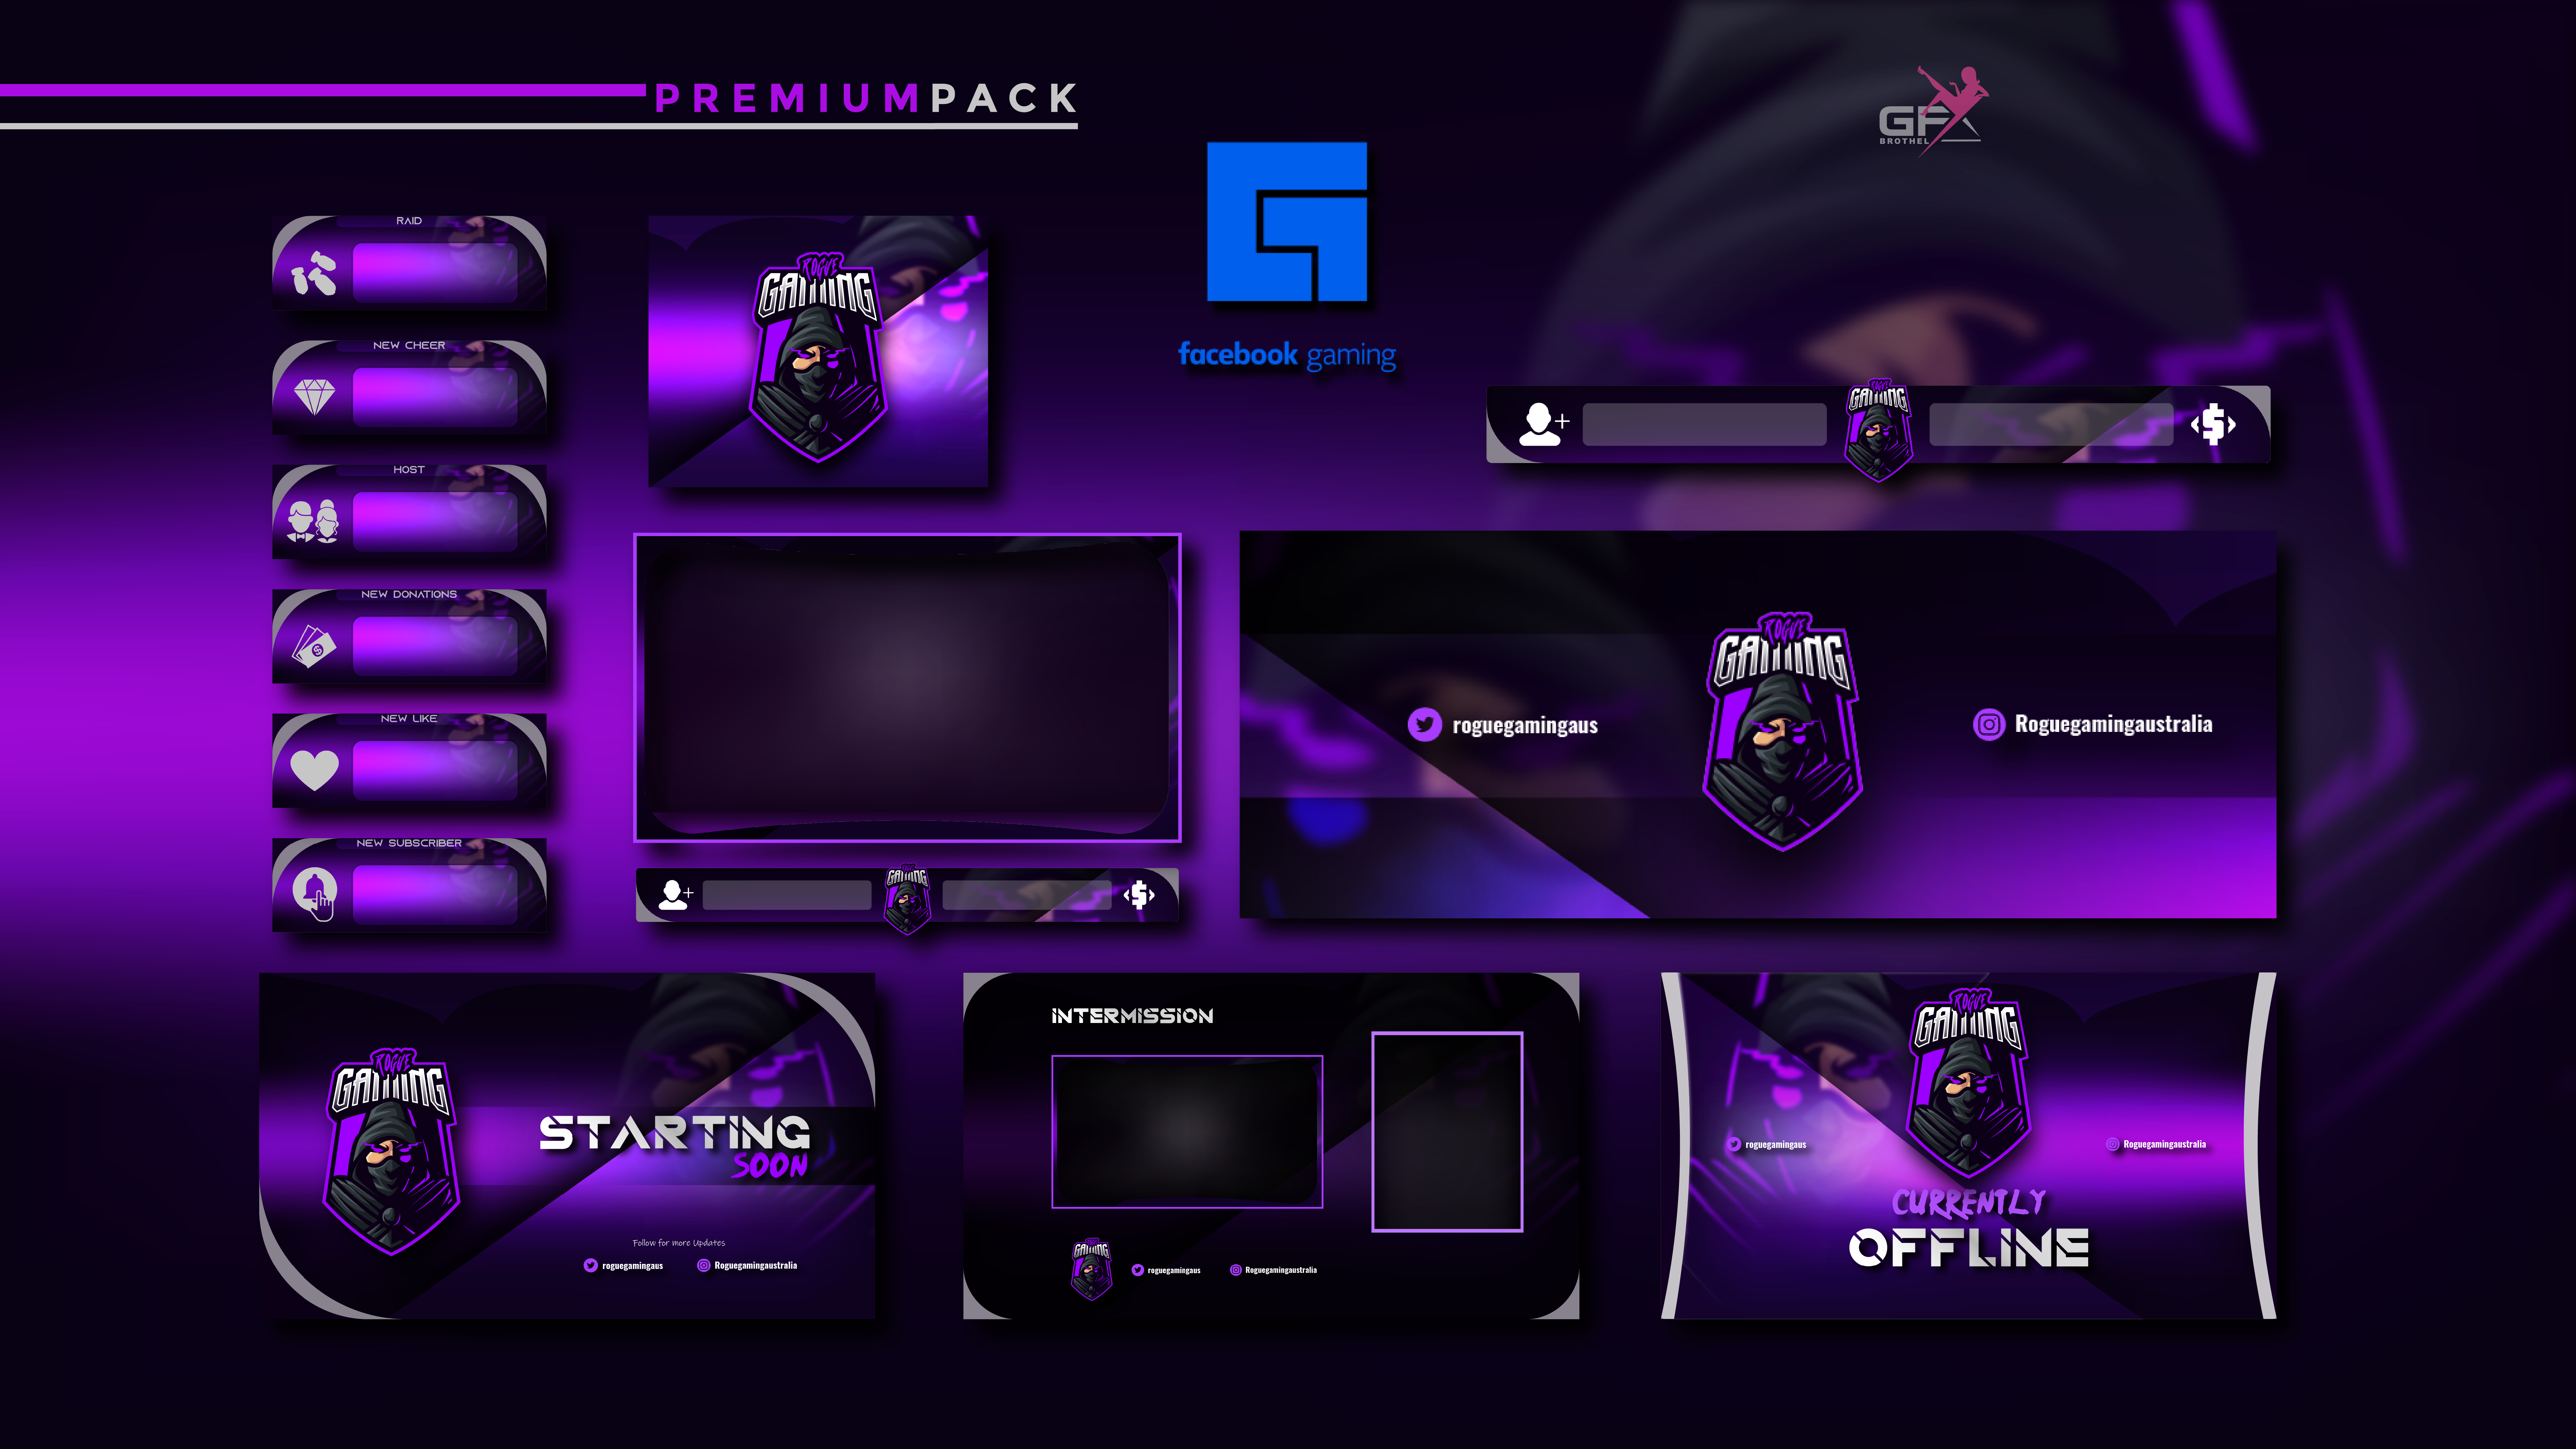 Gfx Brothel I Will Craft Custom Twitch Overlay Stream Package Twitch Channel Logo Panel Banner For 10 On Fiverr Com Logo Design Video Twitch Overlays